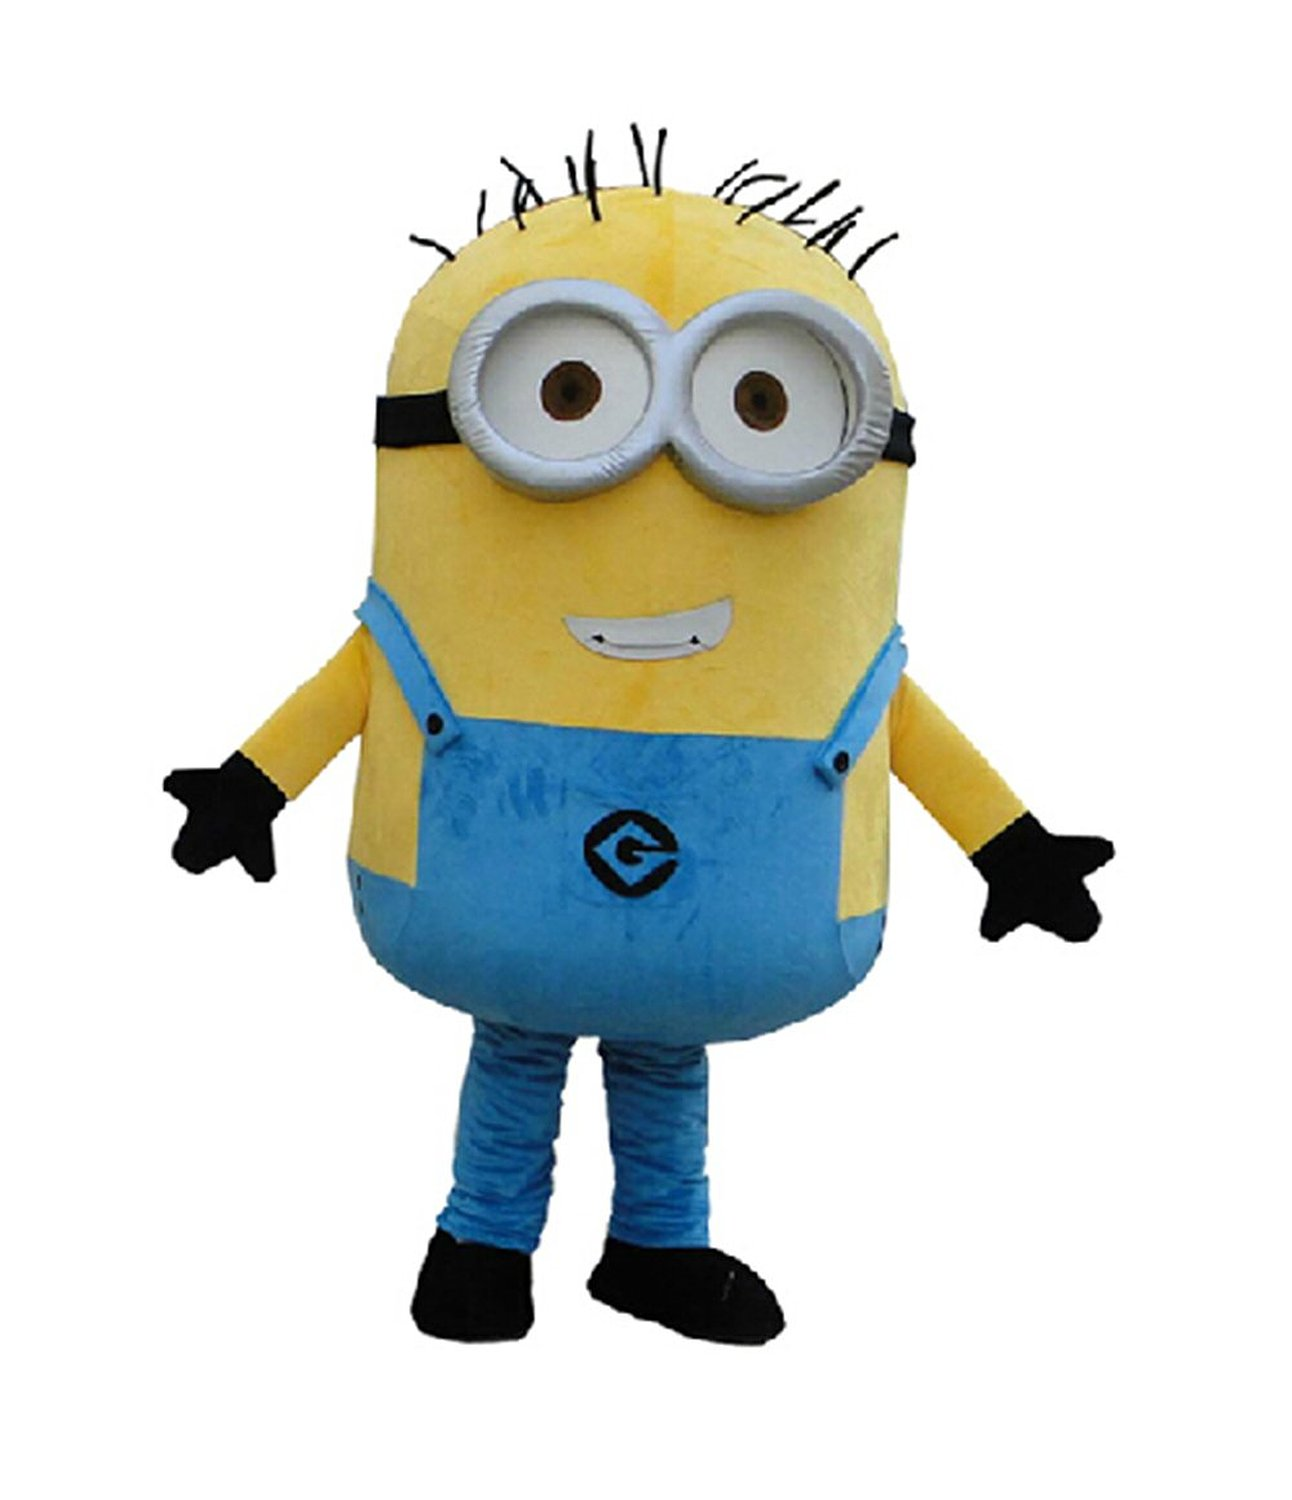 Pre-Made and DIY Despicable Me Minions Costumes